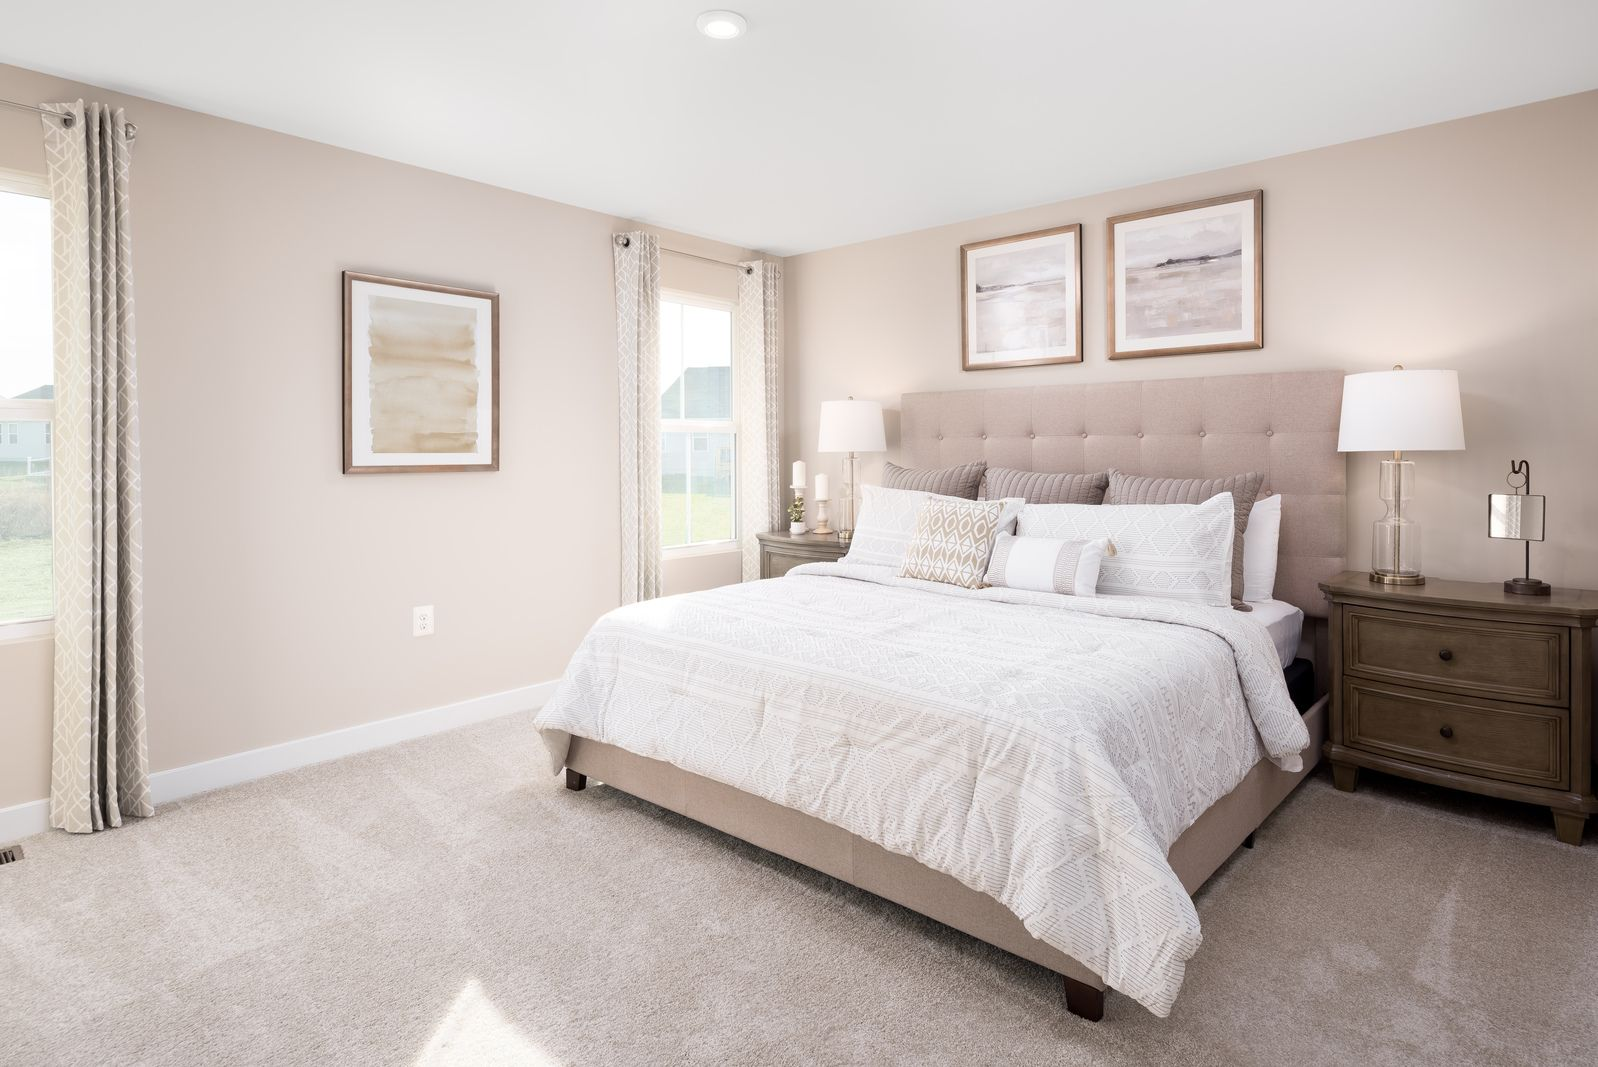 Bedroom featured in the Eden Cay By Ryan Homes in Charlotte, NC